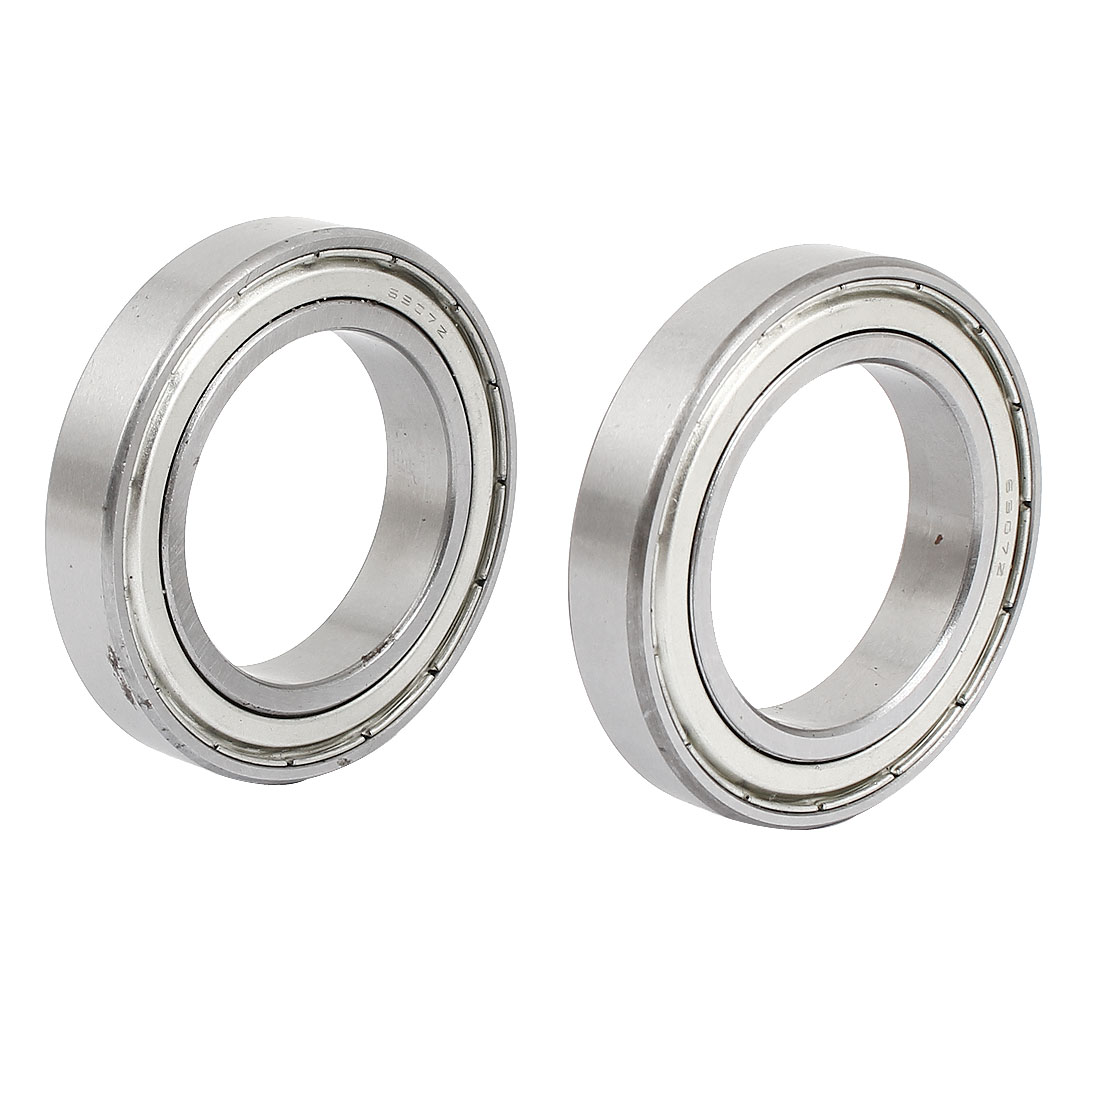 55mm x 35mm x 10mm 69072 Double Sealed Carbon Steel Upper Roller Bearing 2 Pcs